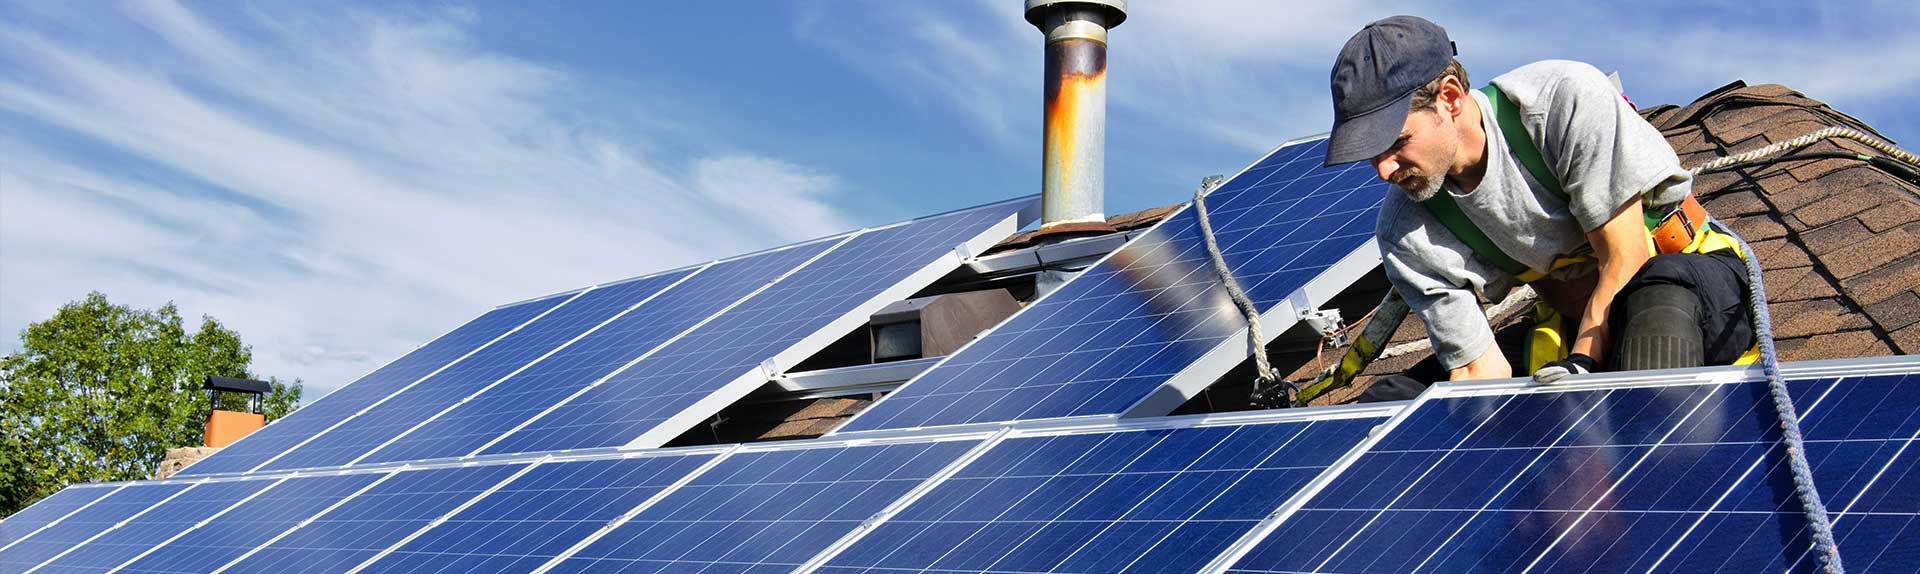 Solar Panel Installation Los Angeles | Pacific Green Homes